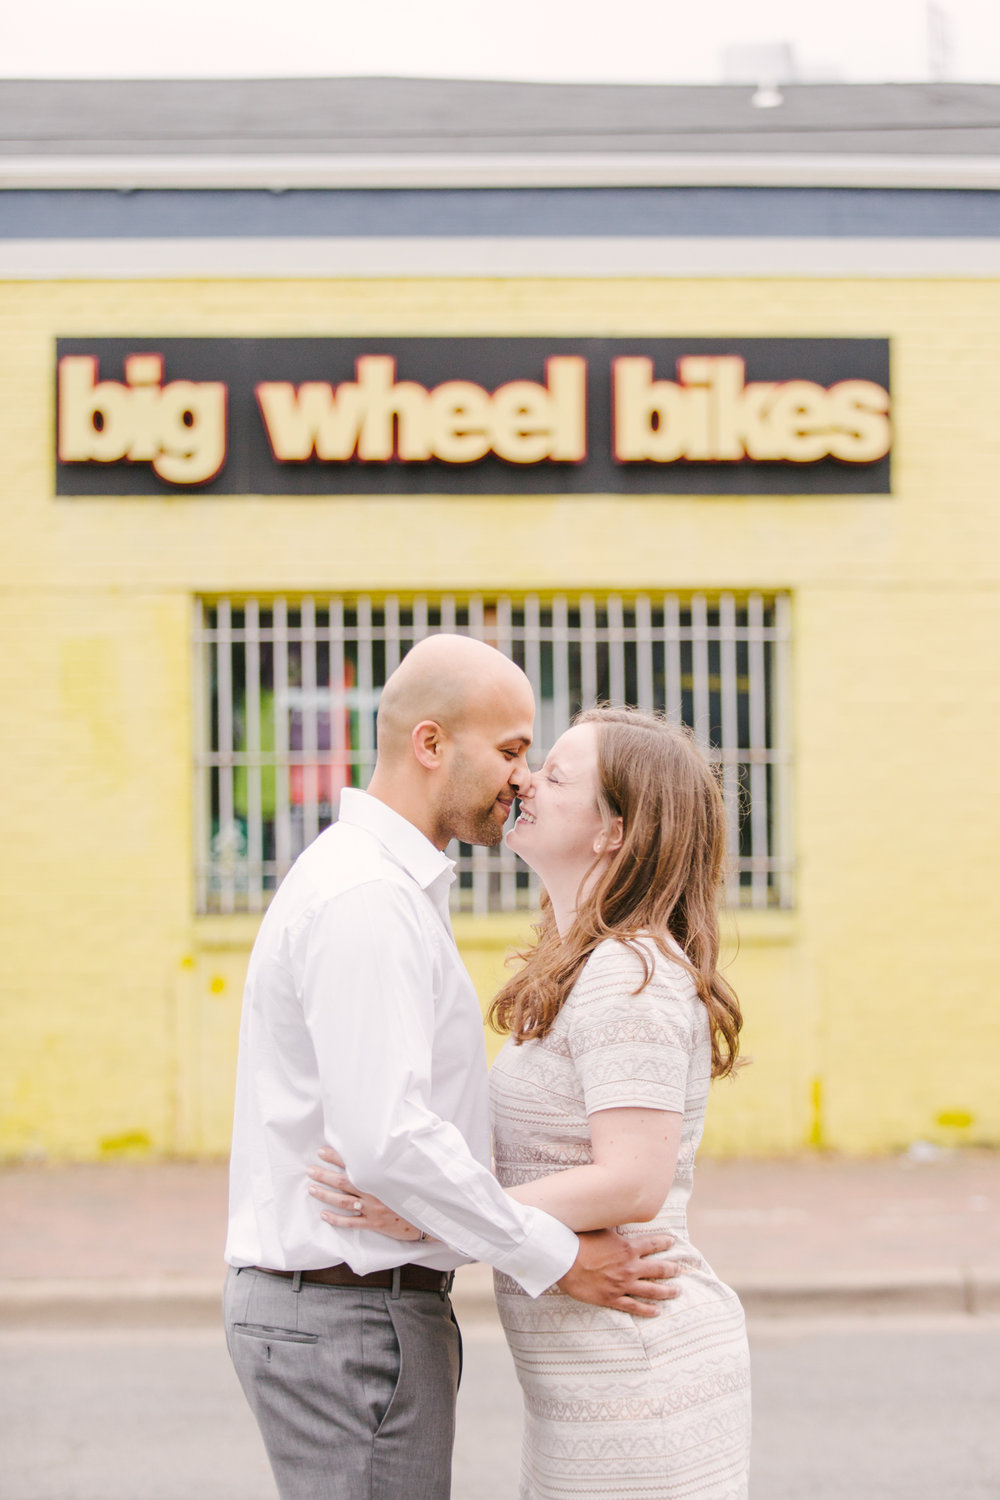 Maral Noori Photography | Kate and Anup | Old Town Alexandria | Jones Point Photography | Virginia Wedding Photographer | Alexandria Engagement Photographer | Big Wheel Bikes